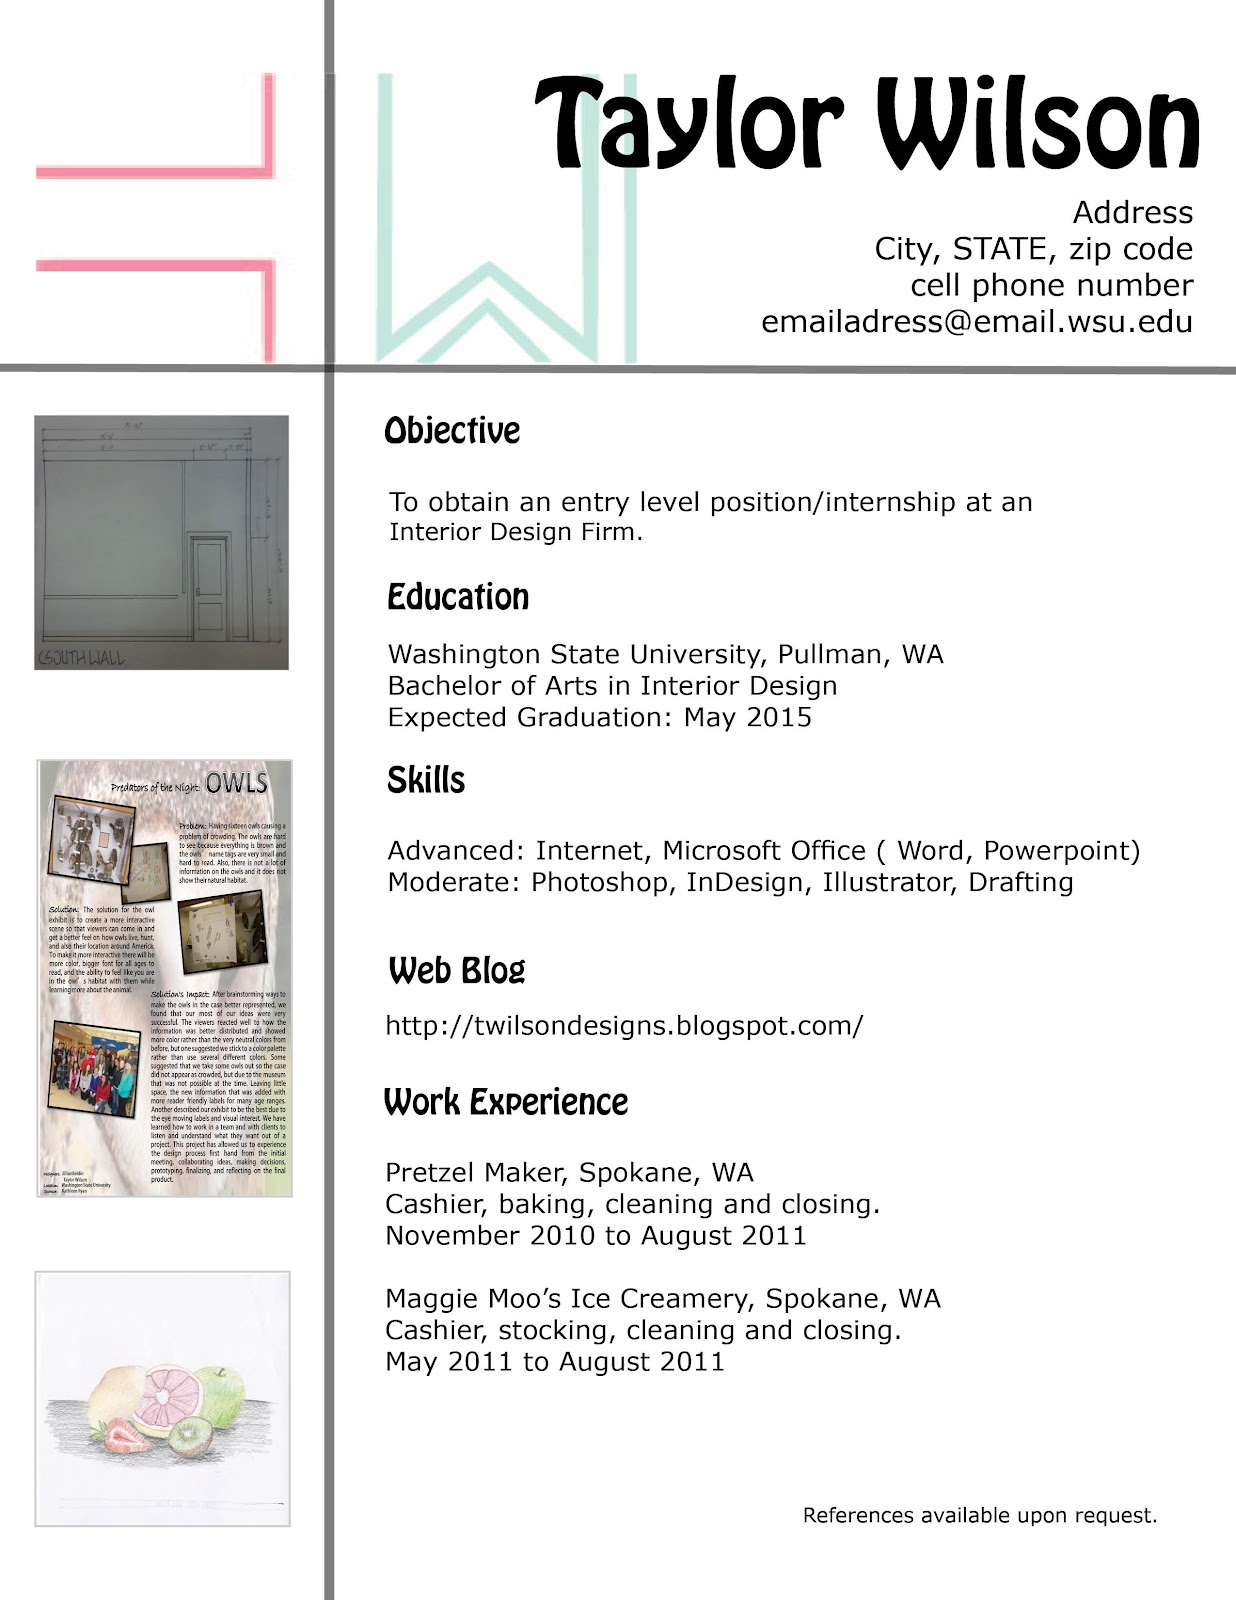 Interior Design Resume Format Present And Promote Martinyordanov1221889